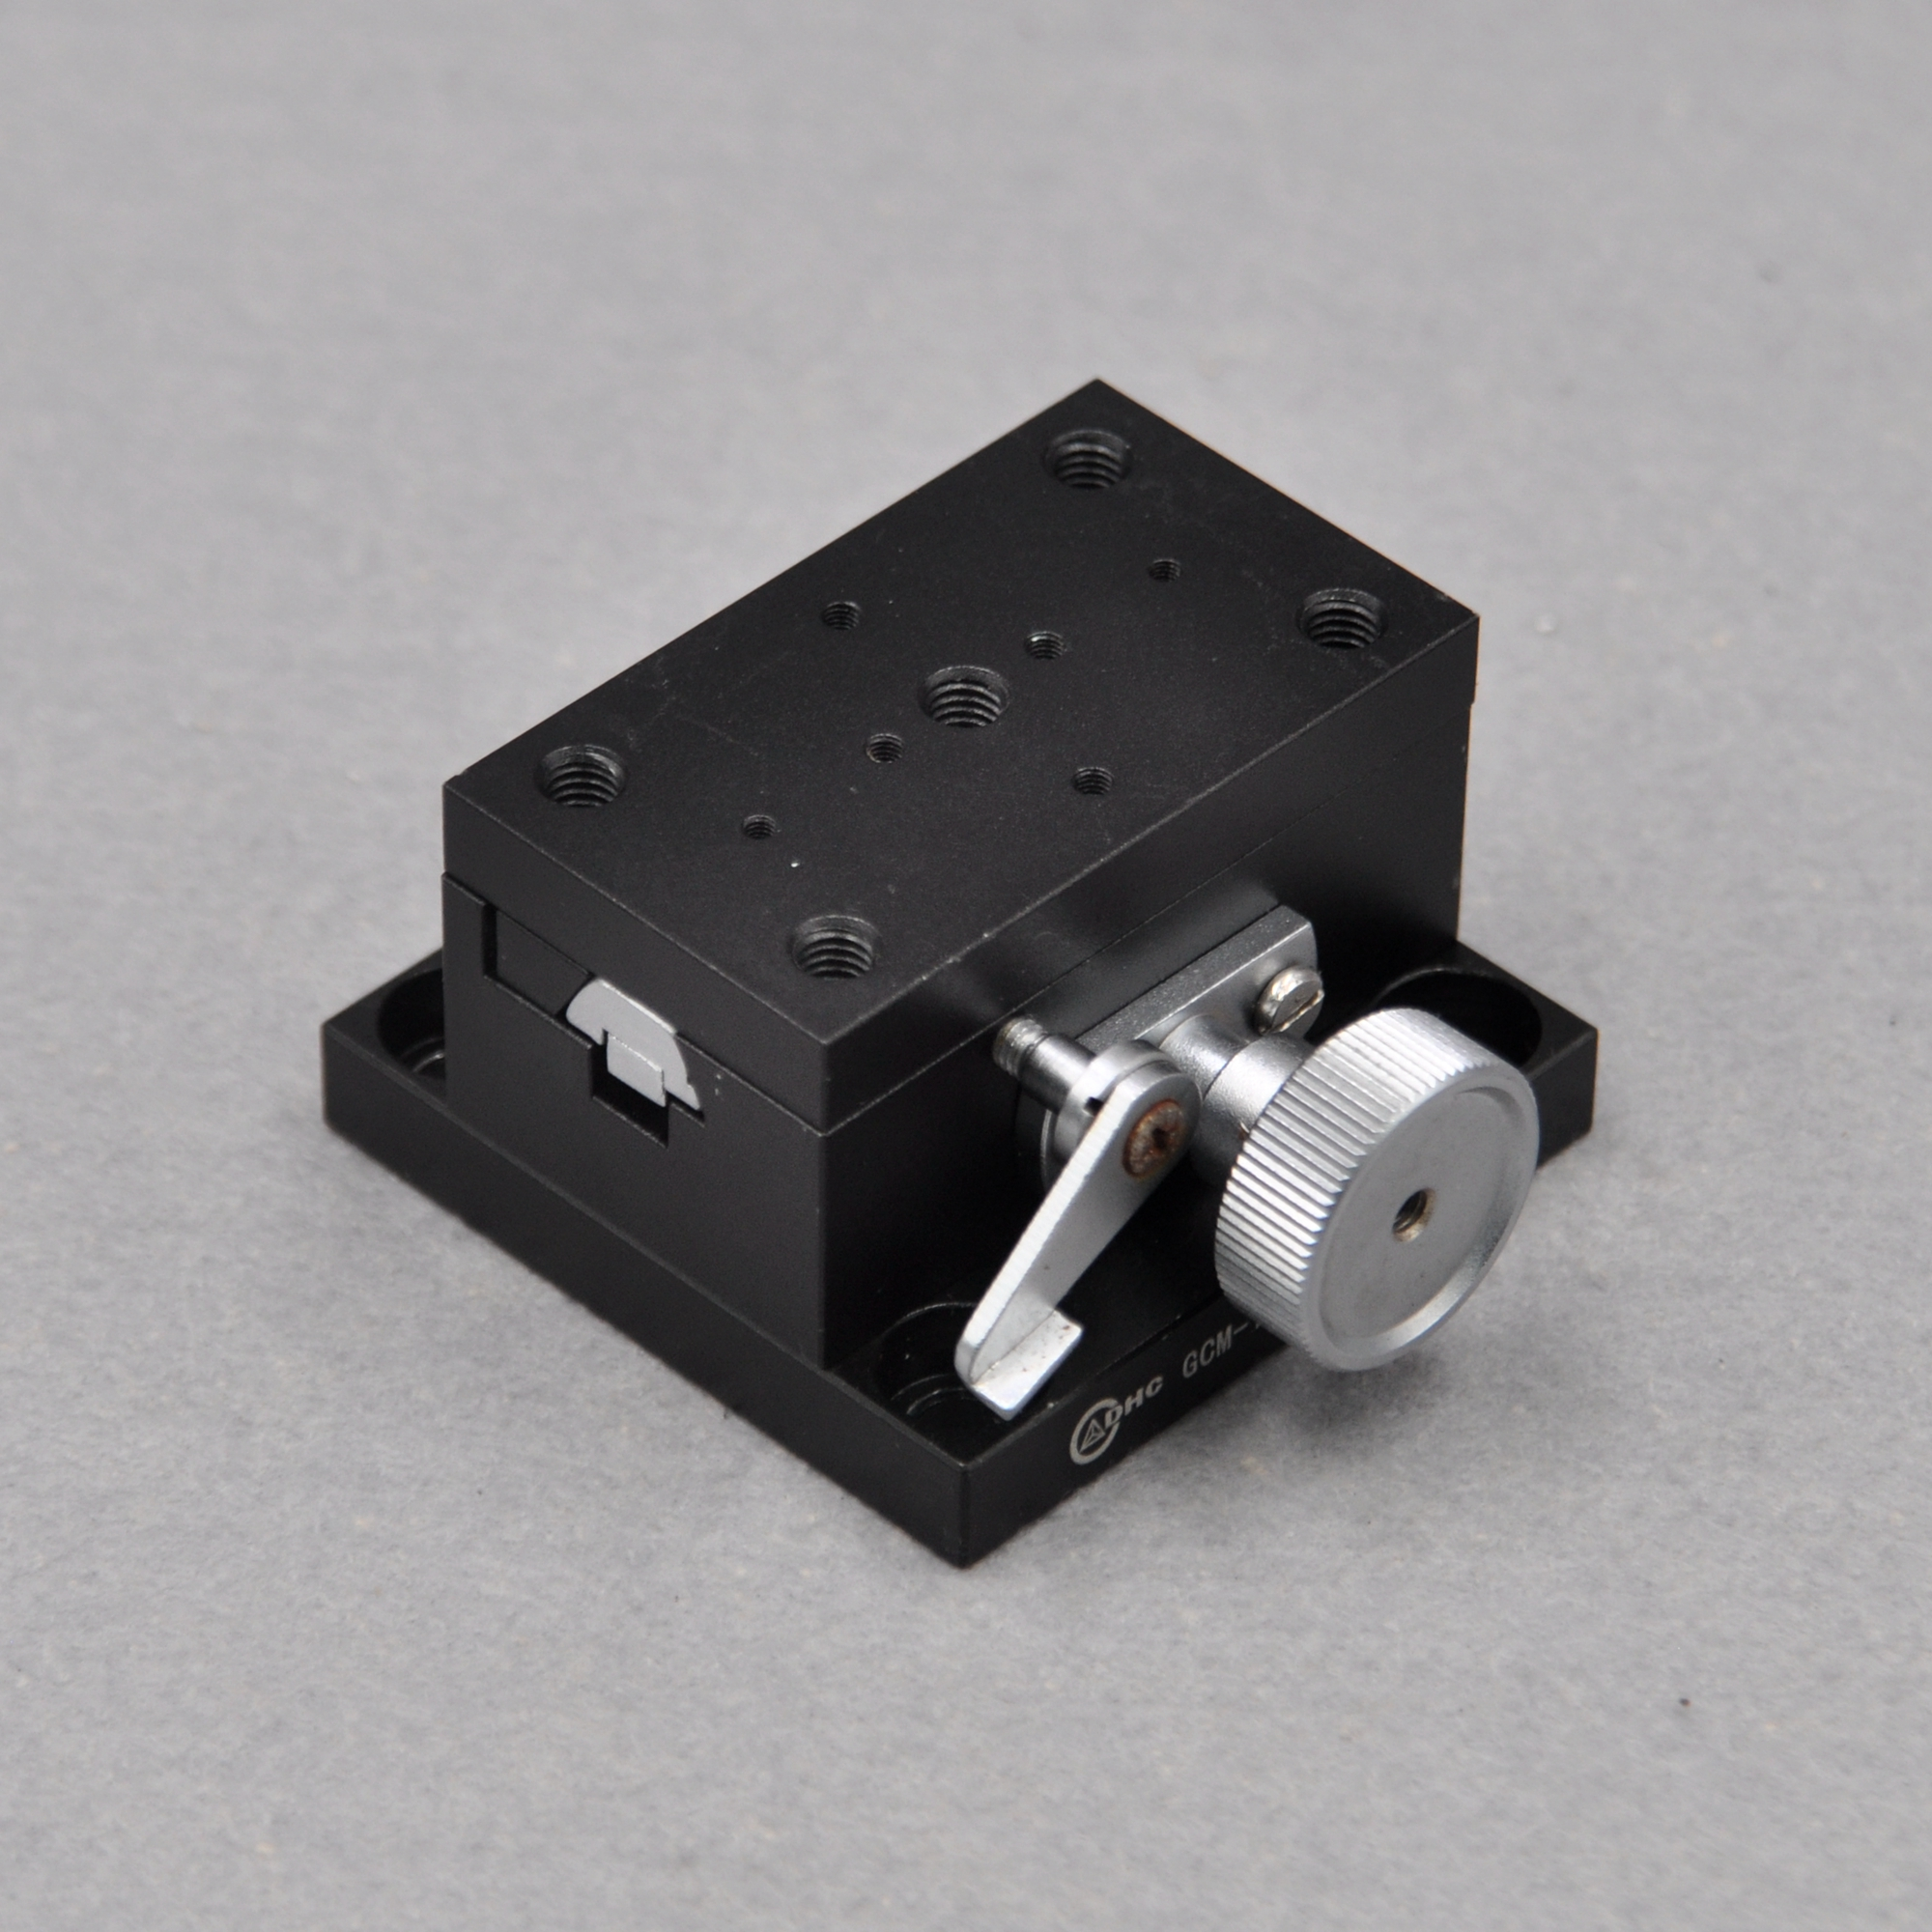 Y Axis DHC GCM-150201M Manual High Precision Displacement Slide X Axis Optics 38 * 65mm Table Aluminum